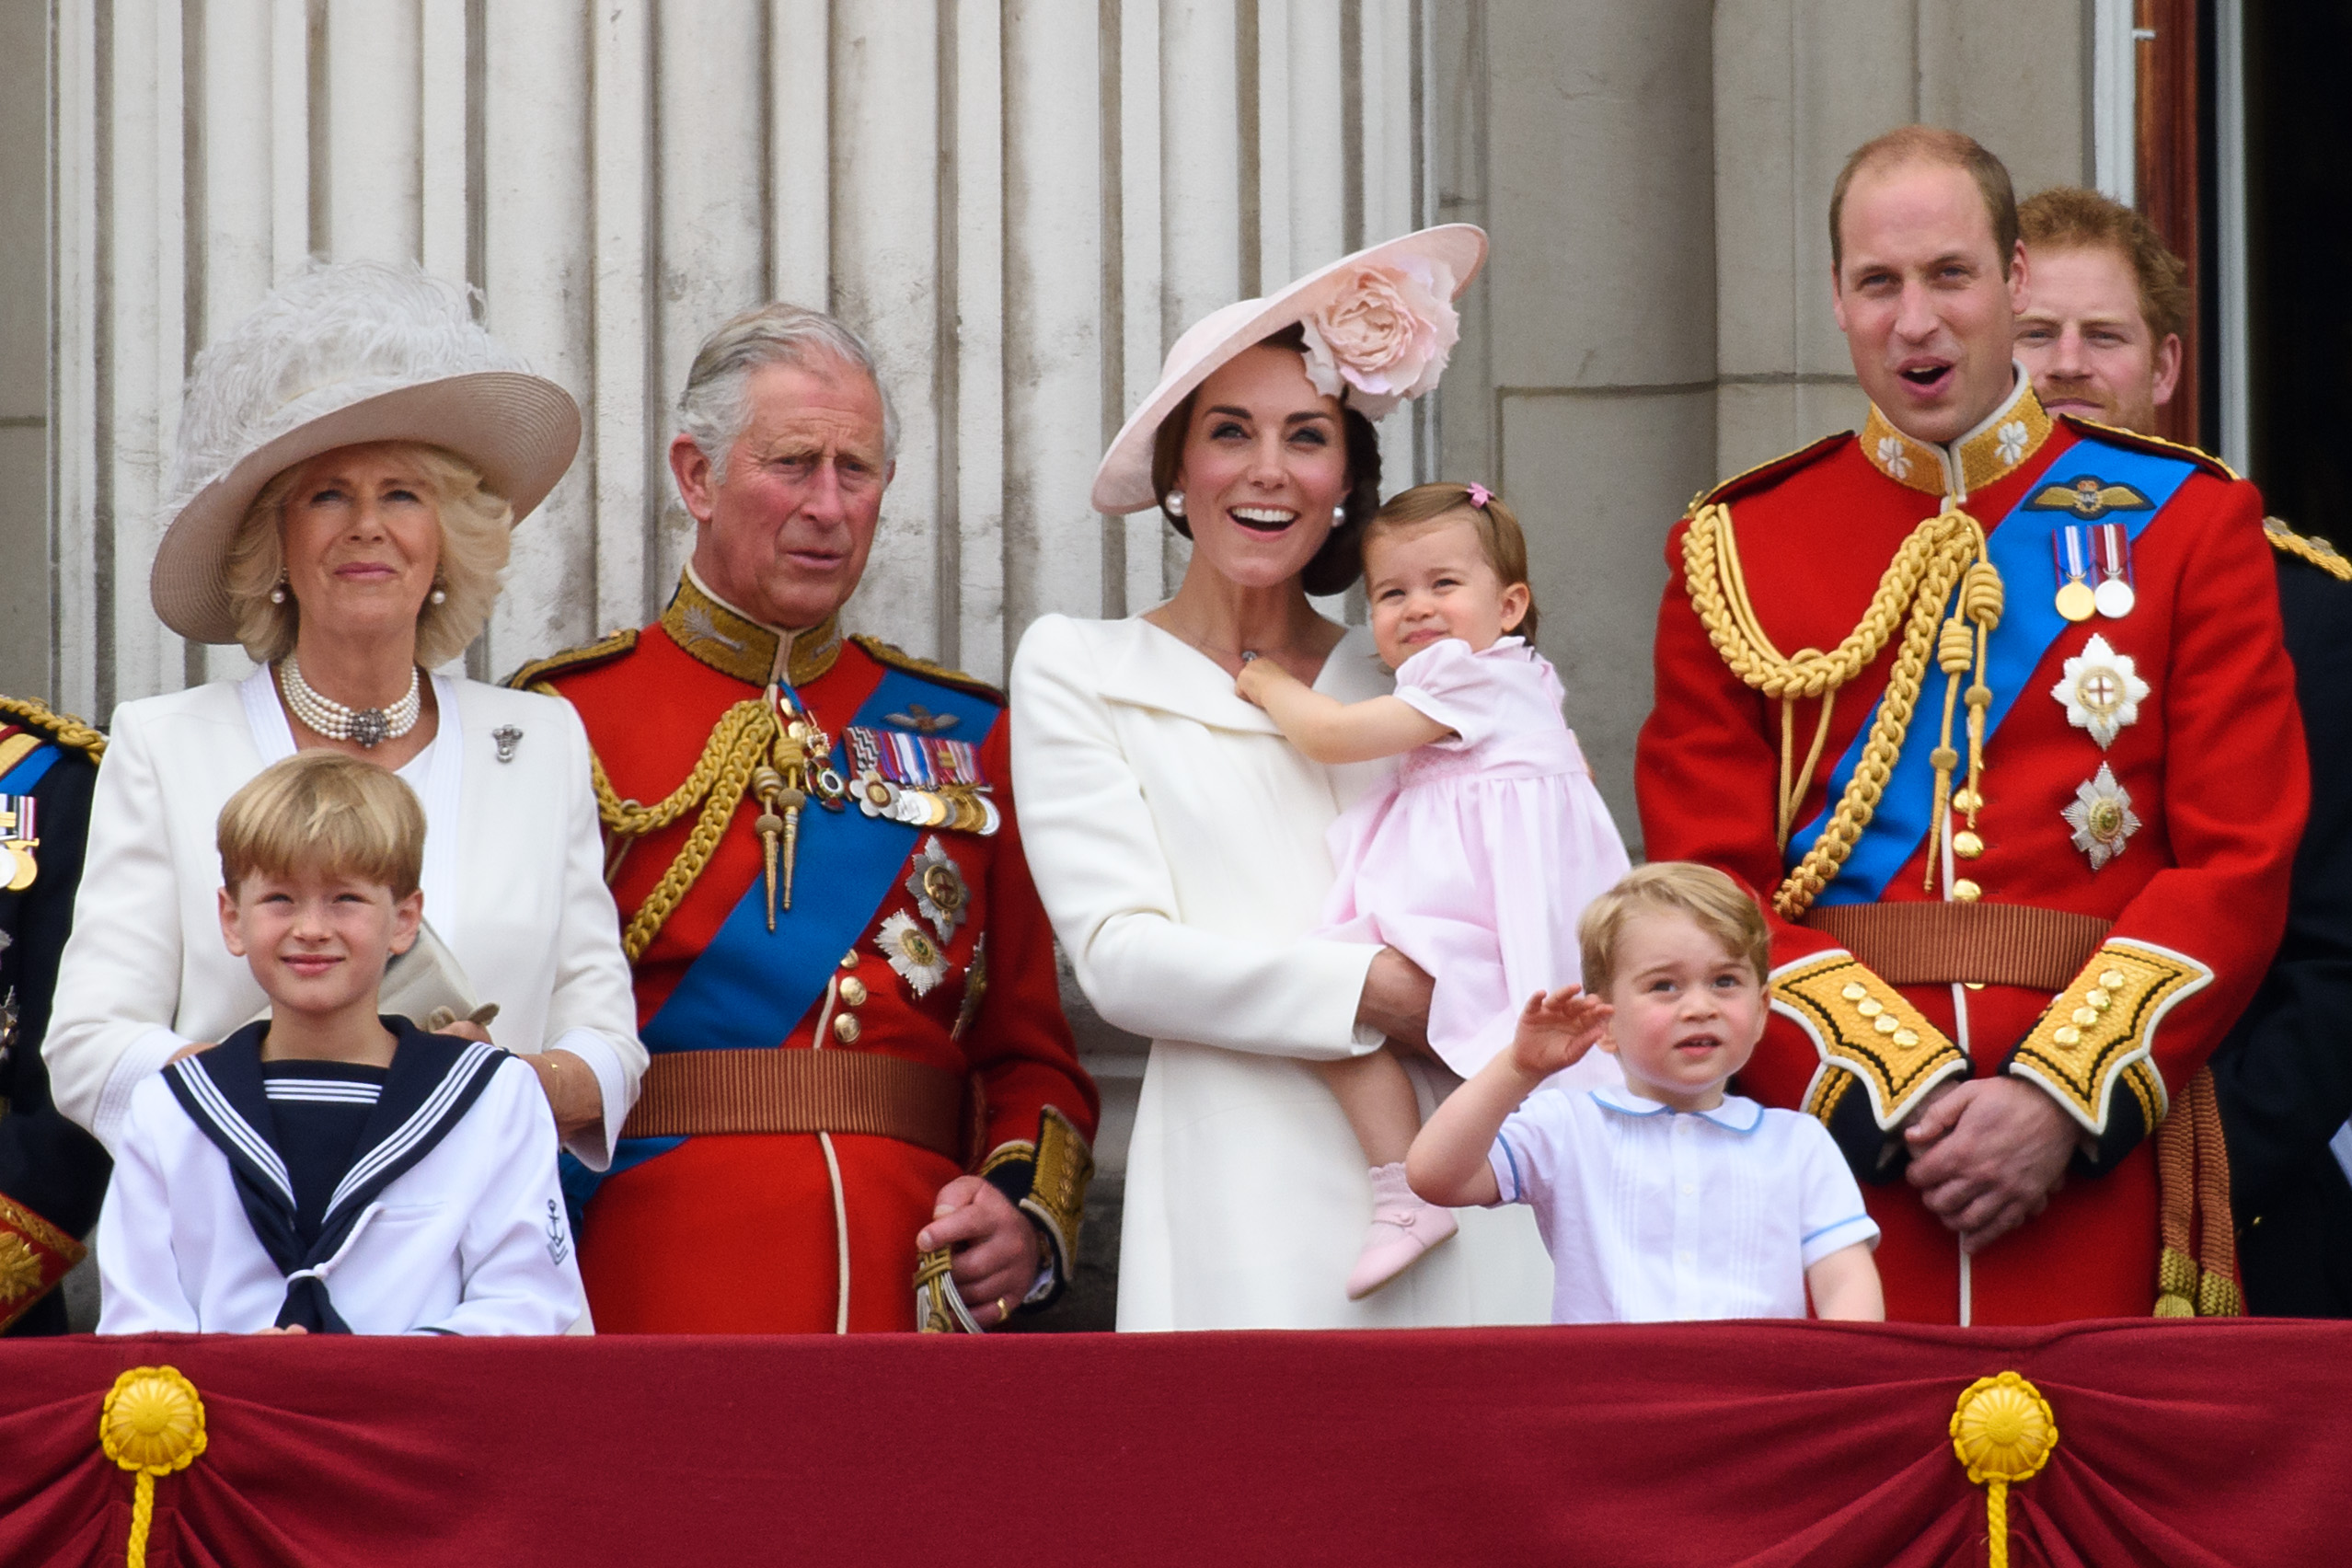 (L-R) Camilla, Duchess of Cornwall, Prince Charles of Wales, Catherine, Duchess of Cambridge, Princess Charlotte of Cambridge, Prince George Of Cambridge and Prince William, Duke of Cambridge watch a fly past during the Trooping the Colour, this year marking the Queen's 90th birthday at The Mall on June 11, 2016 in London, England. The ceremony is Queen Elizabeth II's annual birthday parade and dates back to the time of Charles II in the 17th Century when the Colours of a regiment were used as a rallying point in battle.